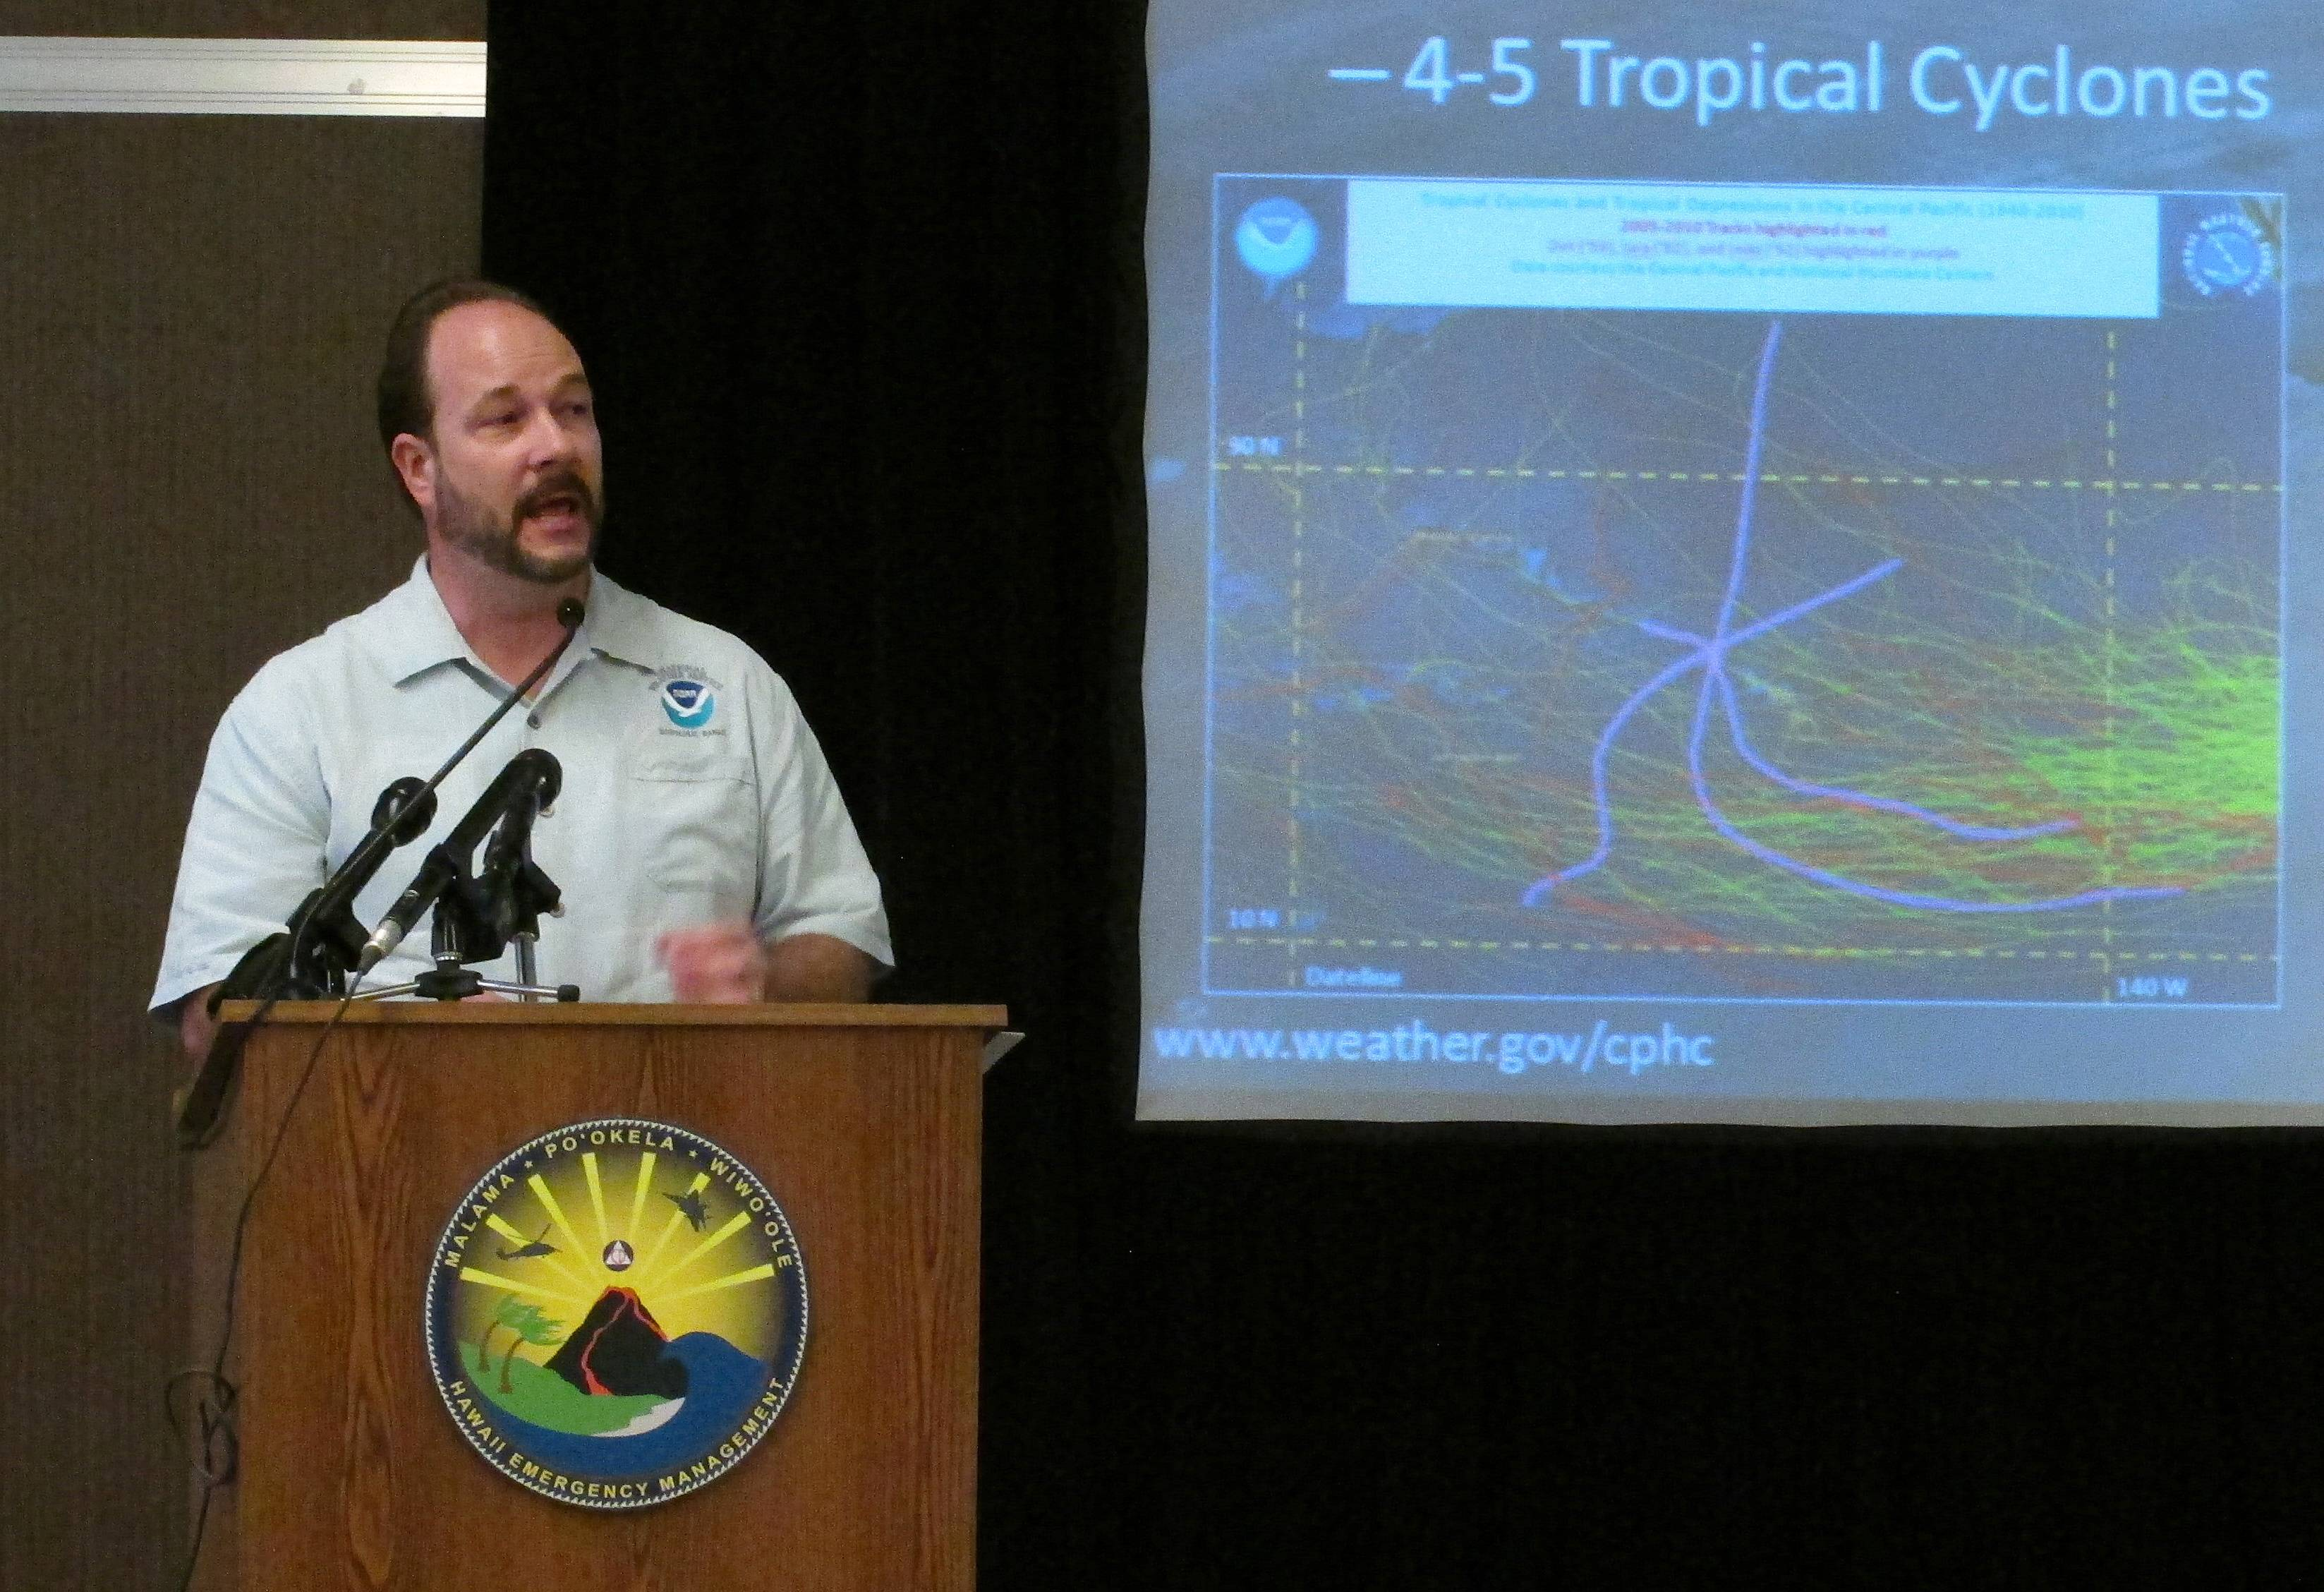 Acting Director Tom Evans of the Central Pacific Hurricane Center speaks Wednesday during a briefing in Honolulu. Weather forecasters are predicting four to seven tropical cyclones in the central Pacific Ocean during this year's hurricane season.